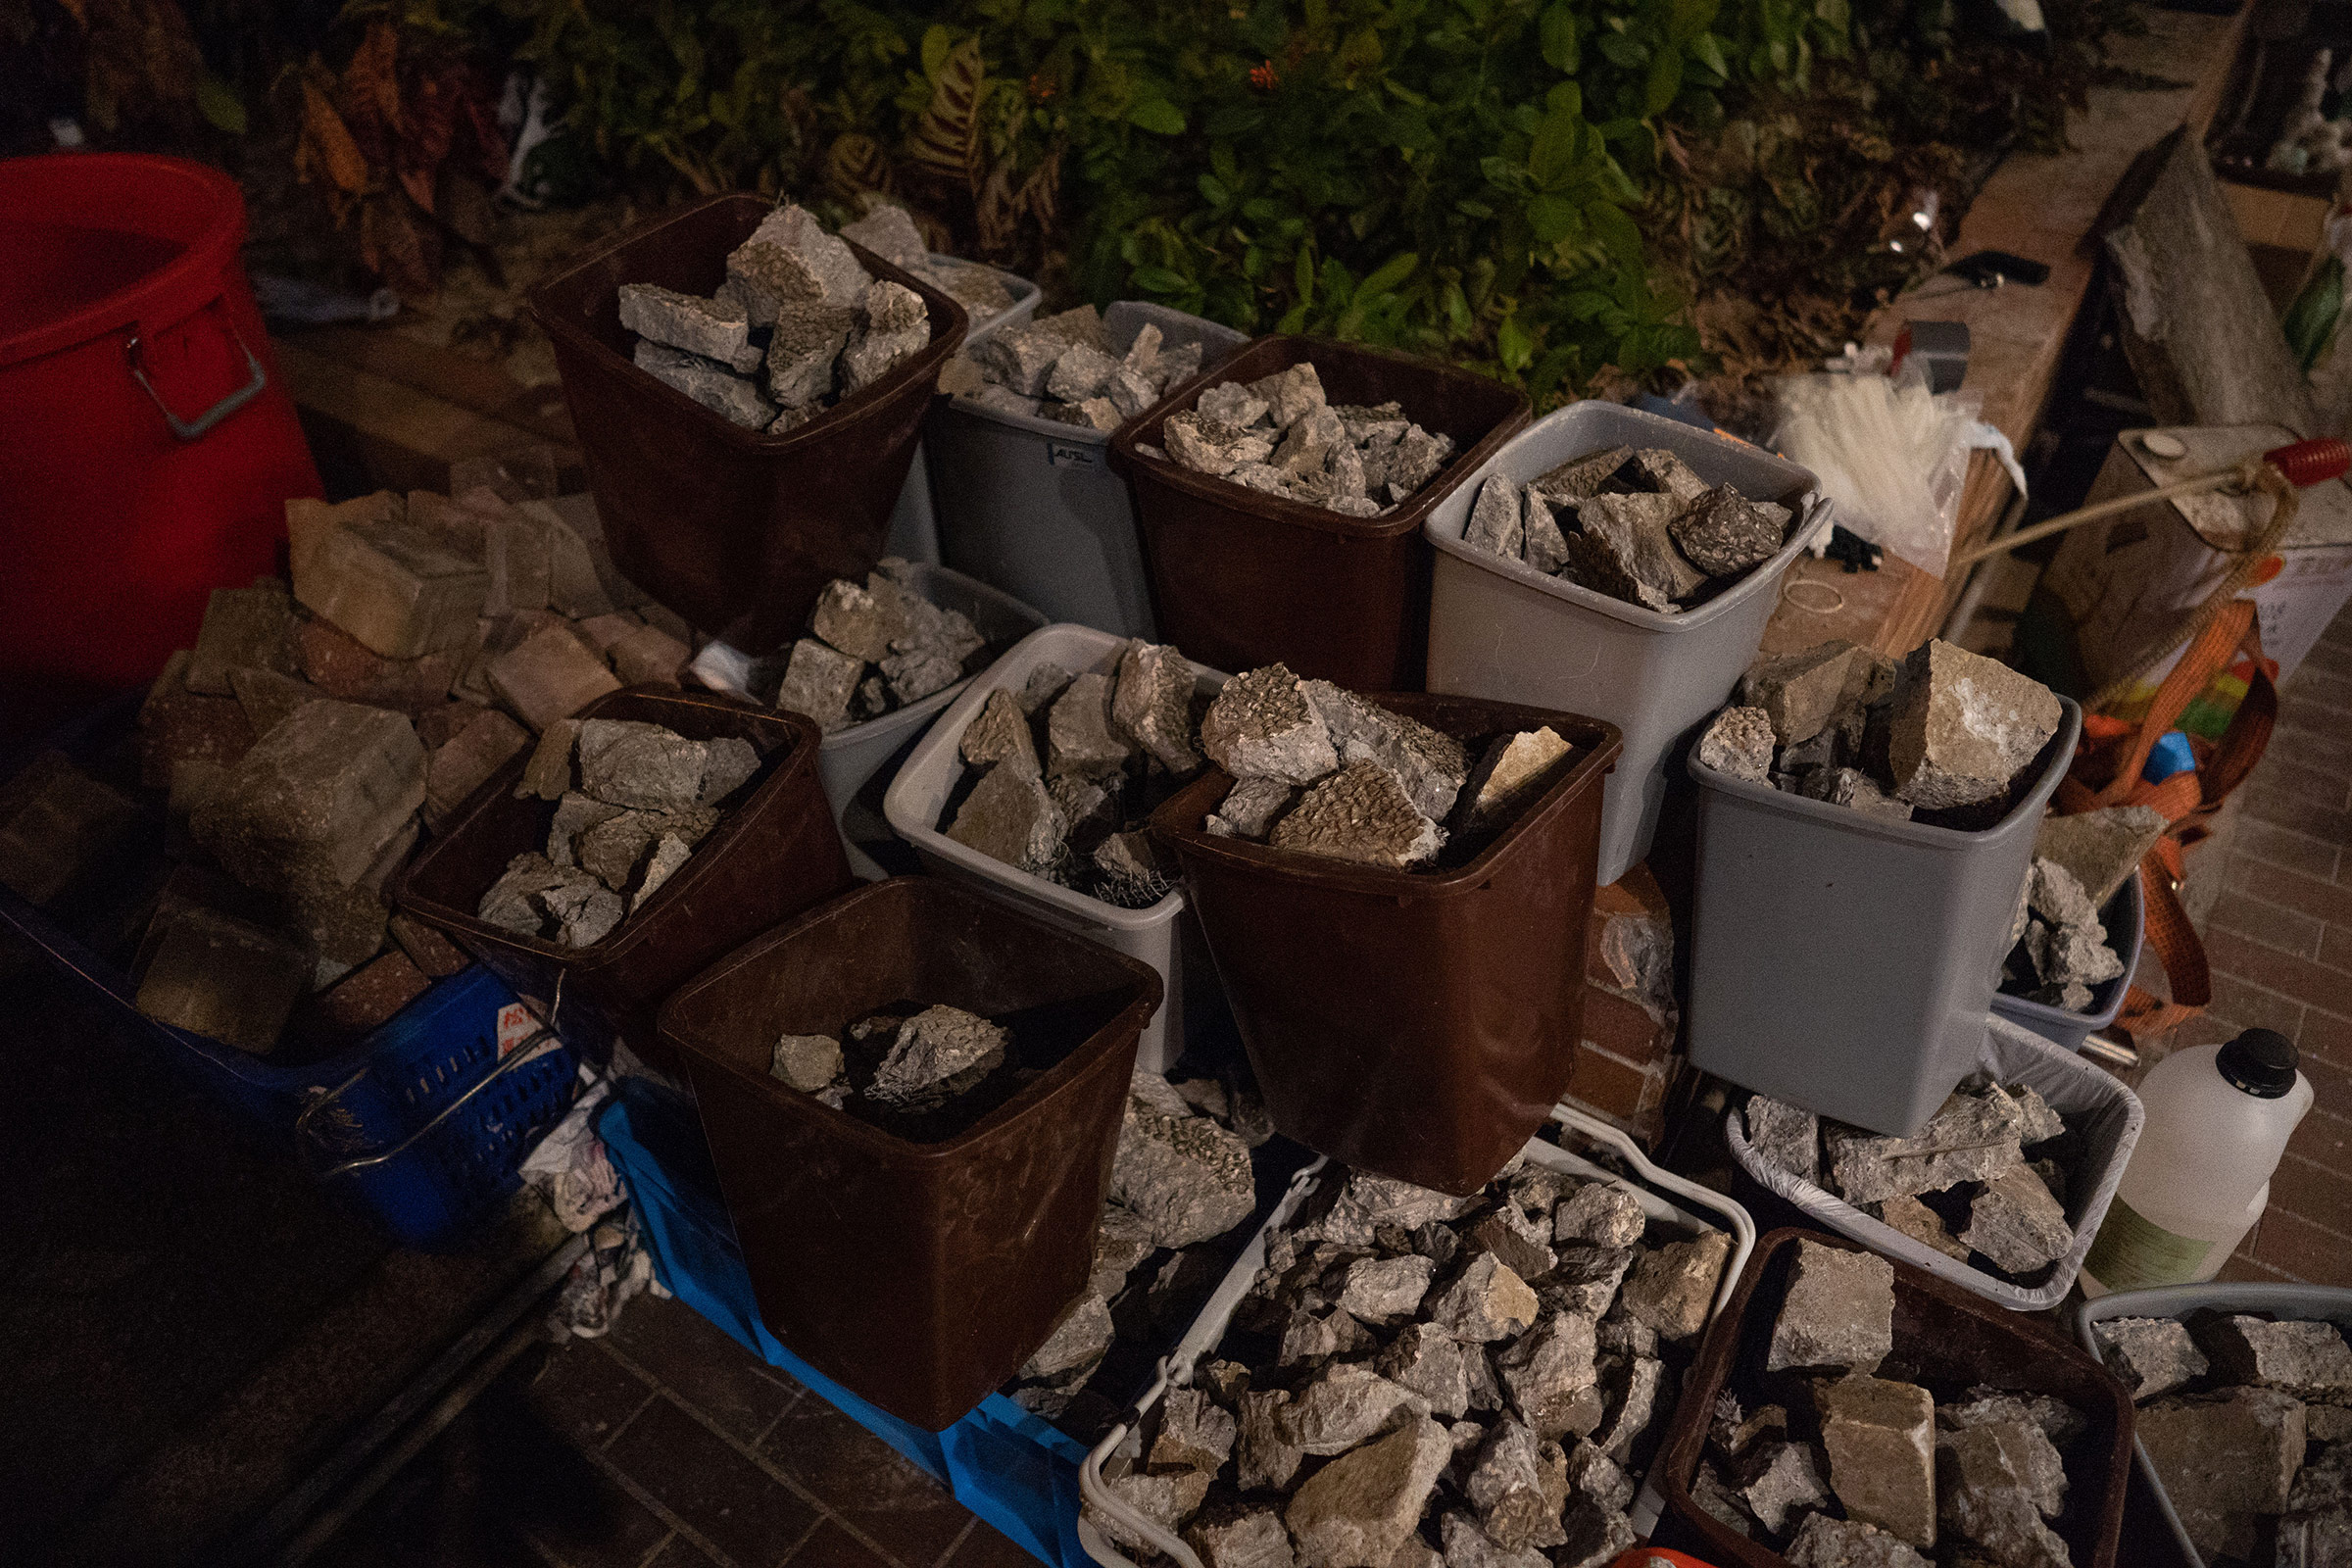 Bricks, used both to slow down advancing police as well as projectiles, are neatly sorted into garbage bins at PolyU.